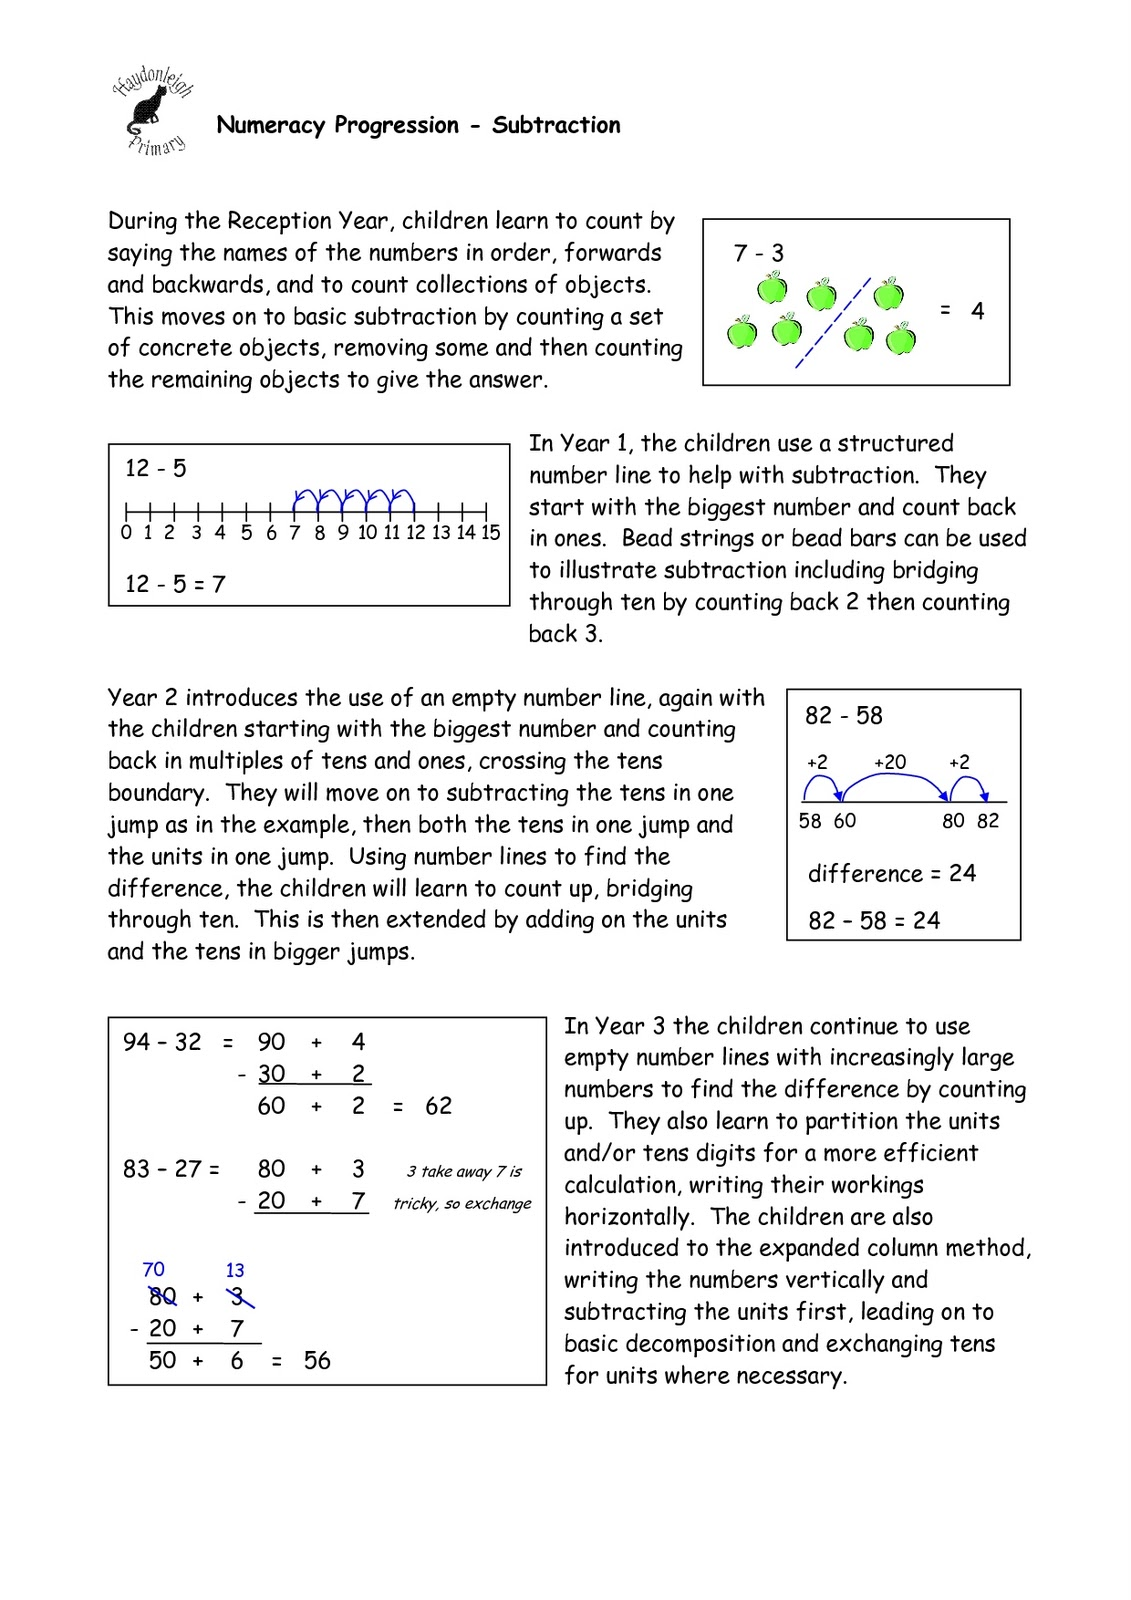 Bbc Bitesize Subtraction Games Ks1 bbc bitesize ks1 maths – Bbc Bitesize Ks1 Maths Worksheets